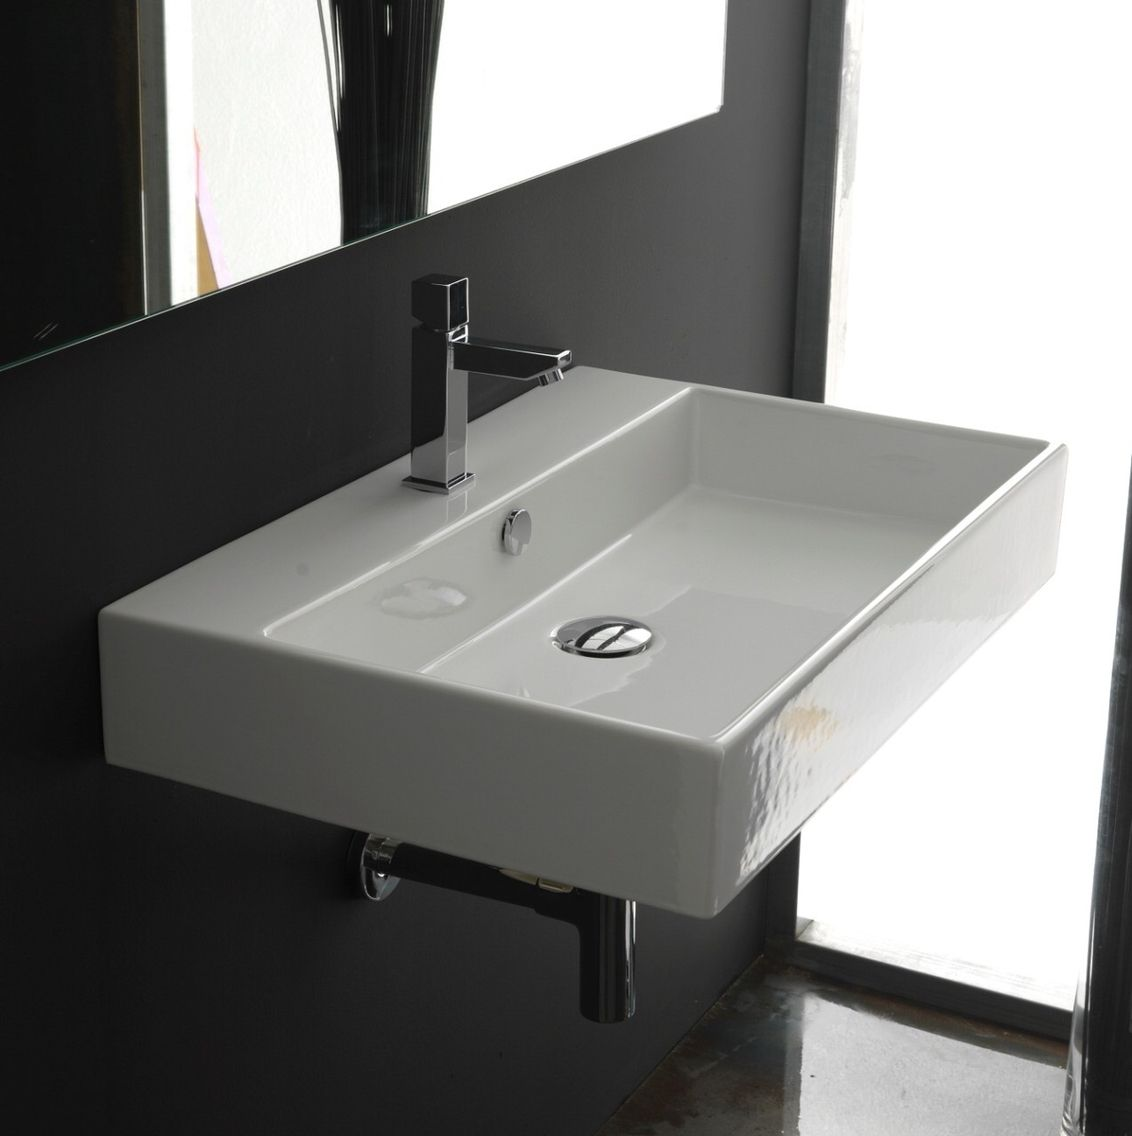 Wall Mounted Sink | ACCESSIBLE SINKS | Pinterest | Wall mounted sink ...